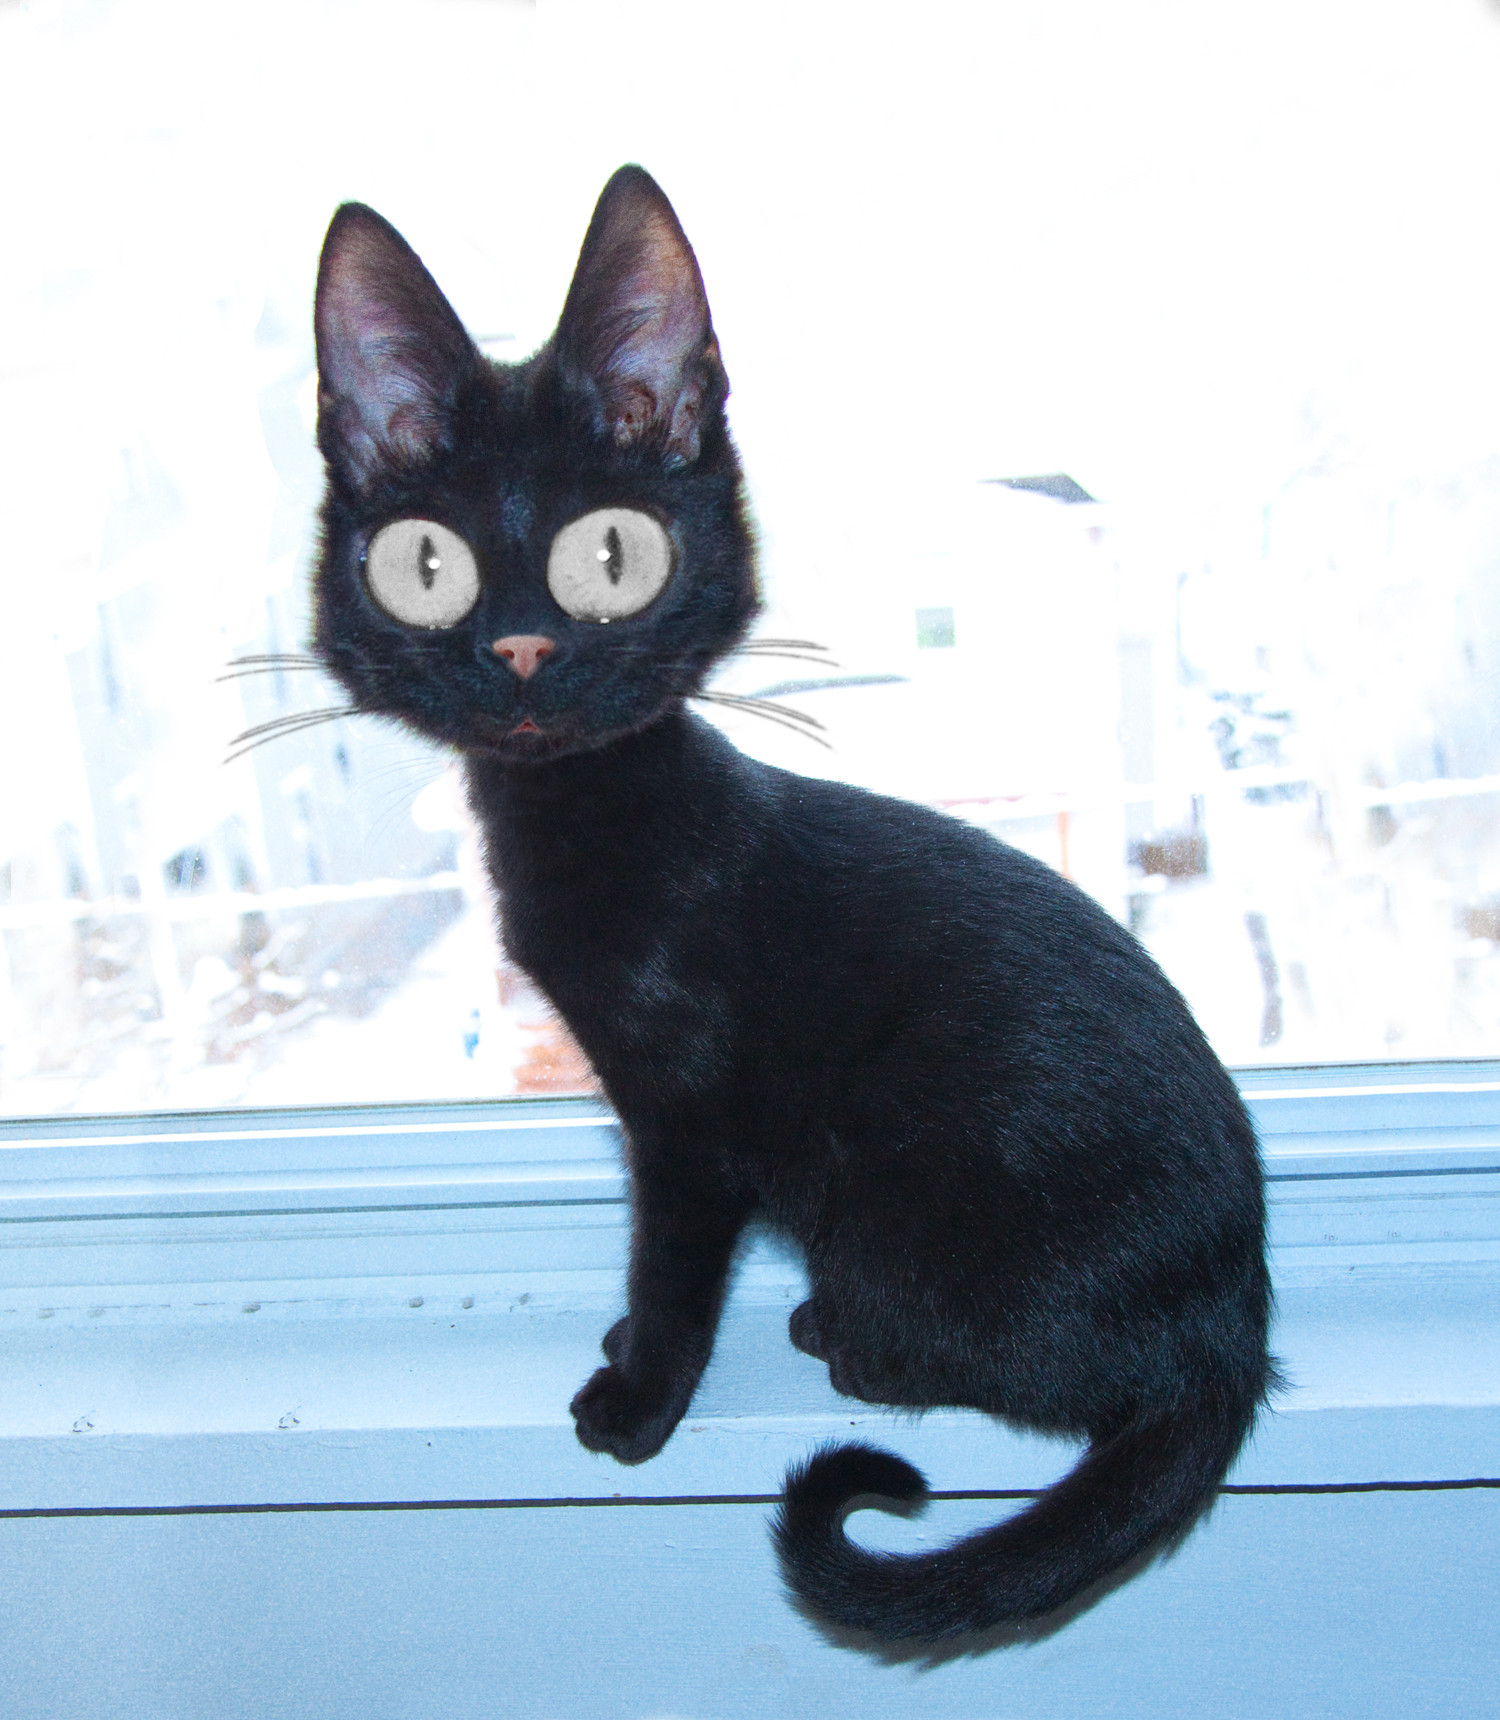 15 - Jiji in Real Life